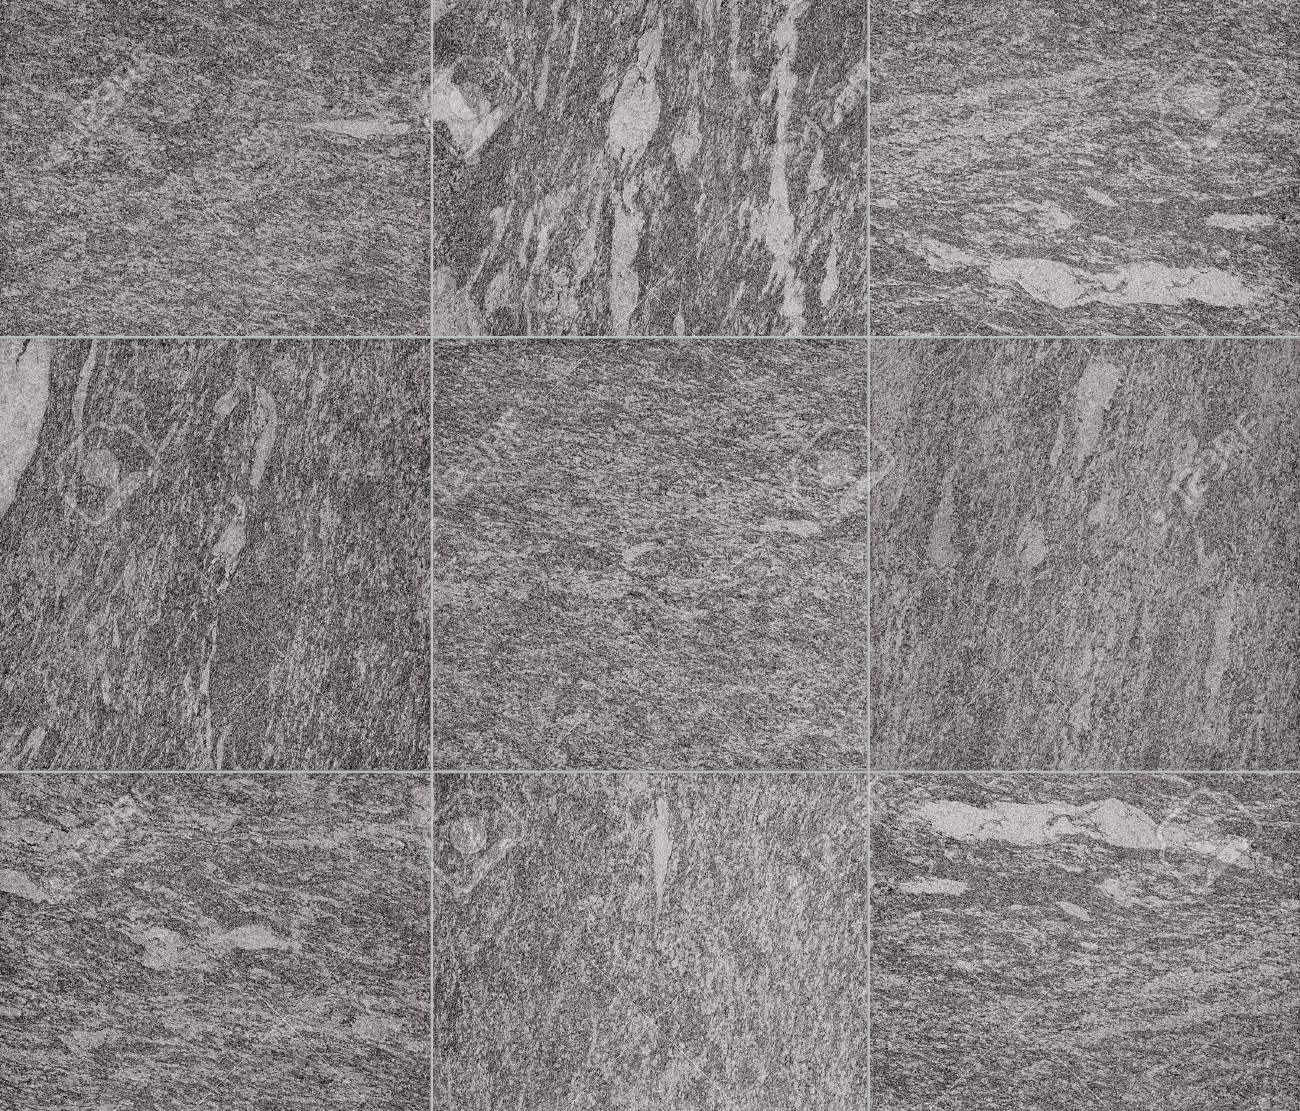 Gray Granite Mosaic Tiles Texture Background Granite Tiles With Stock Photo Picture And Royalty Free Image Image 117263699